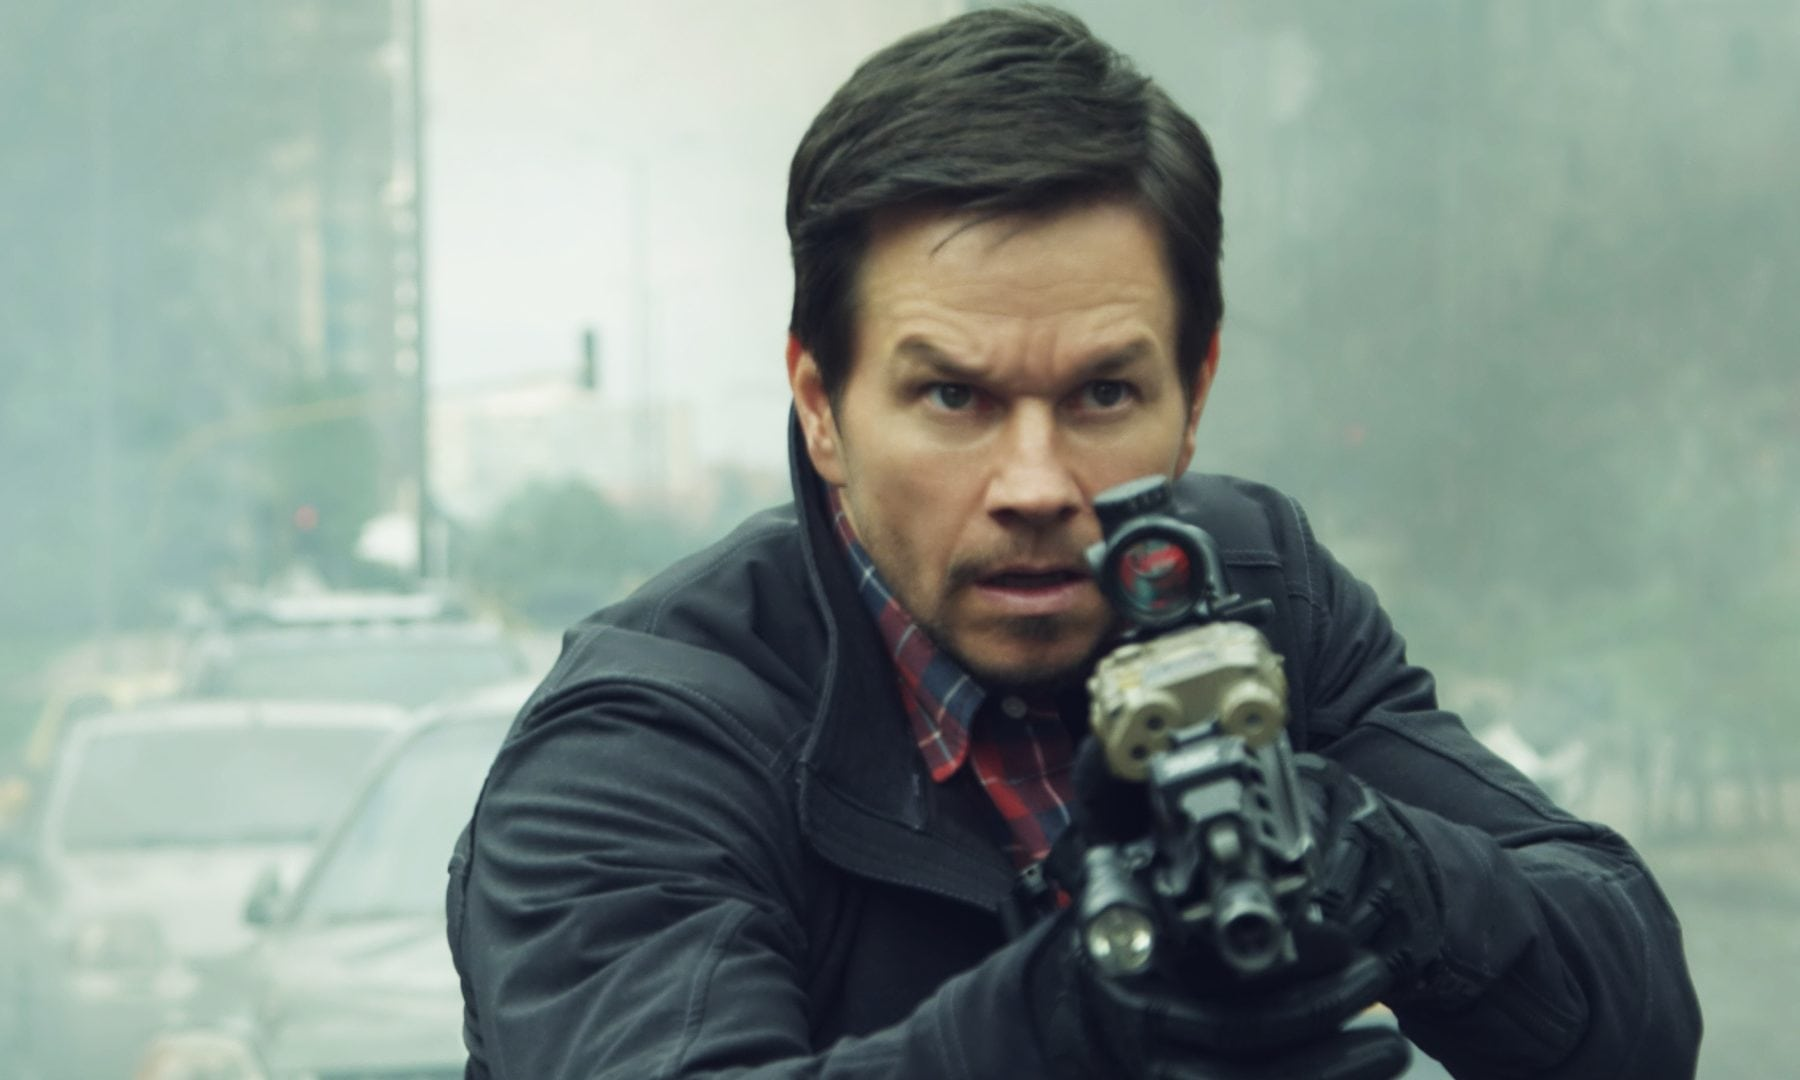 Mark Wahlberg to play Sully in Uncharted movie